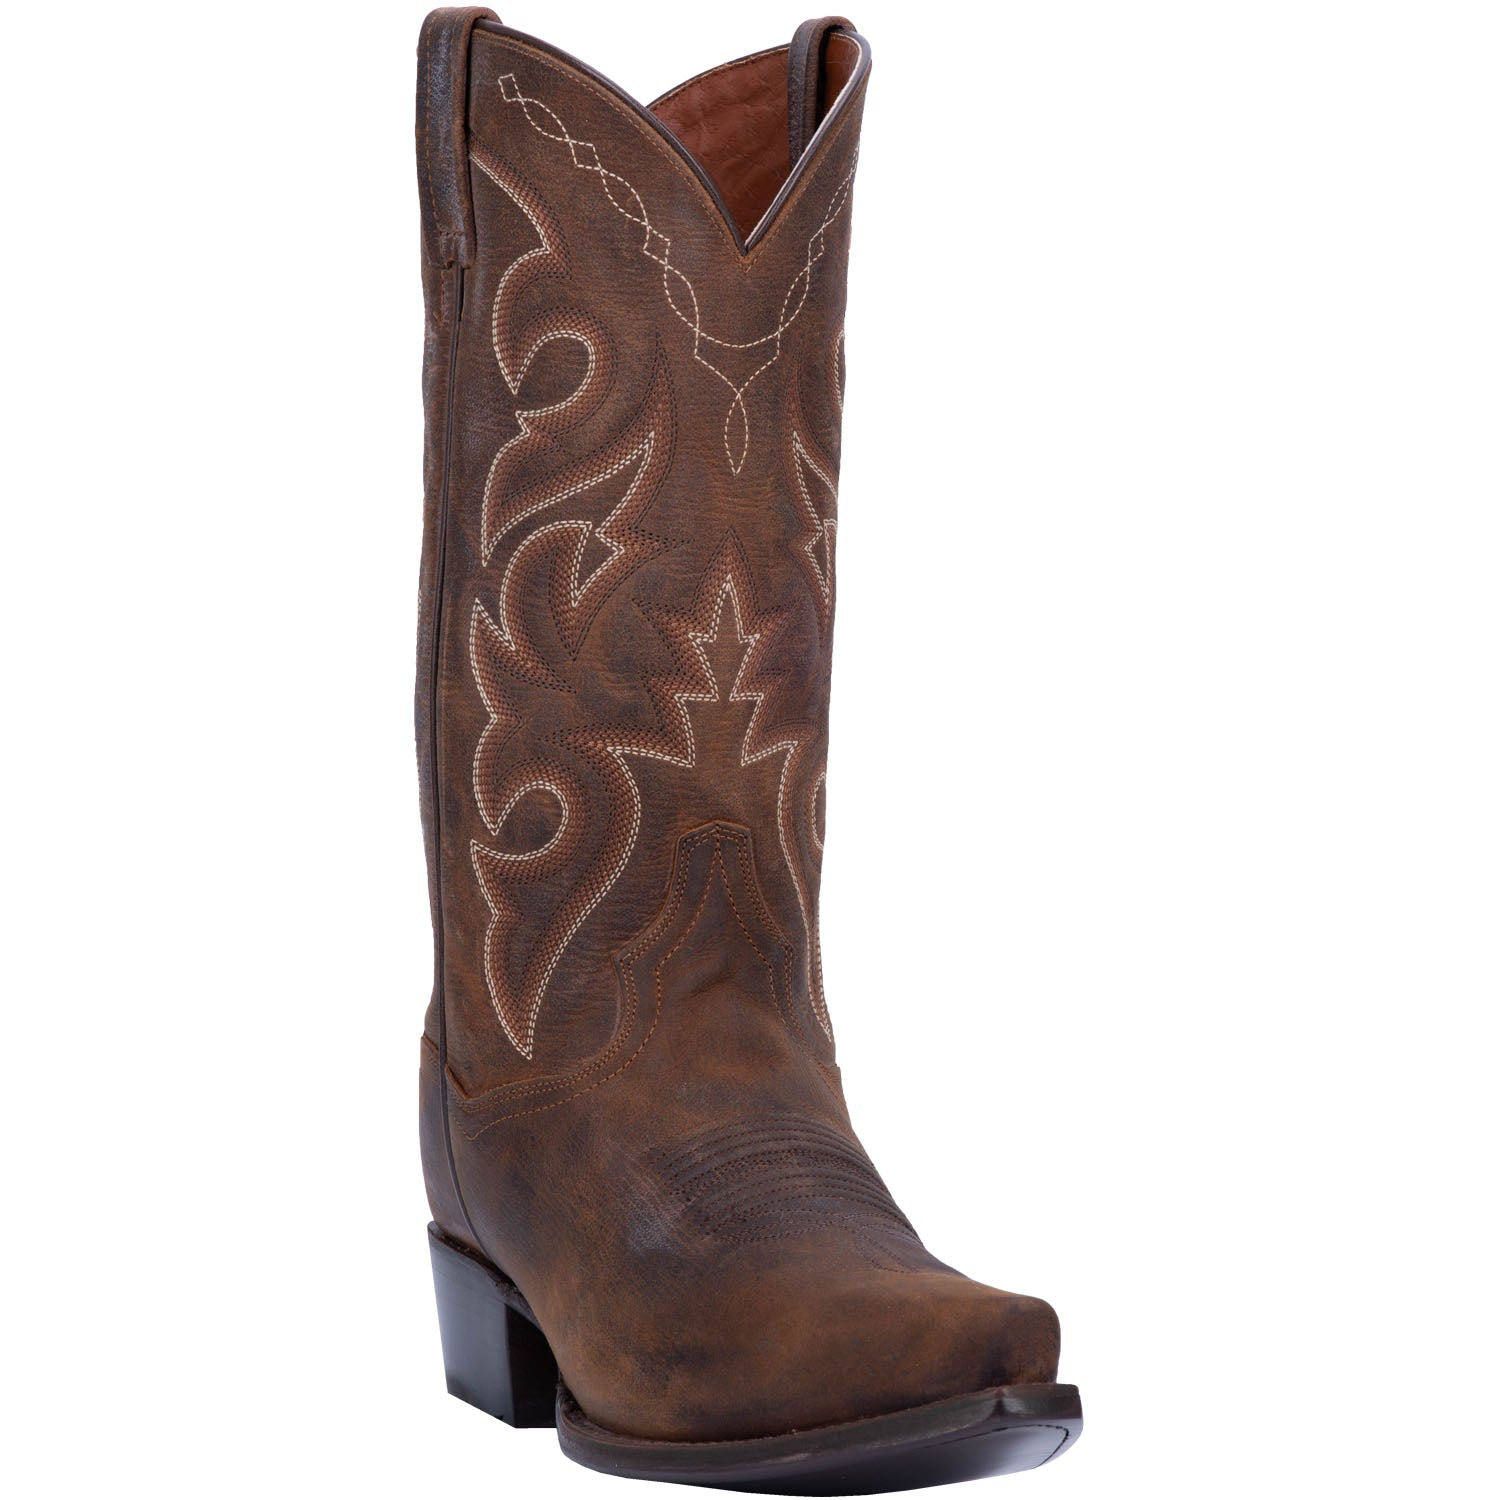 RENEGADE S LEATHER BOOT 4254110056490